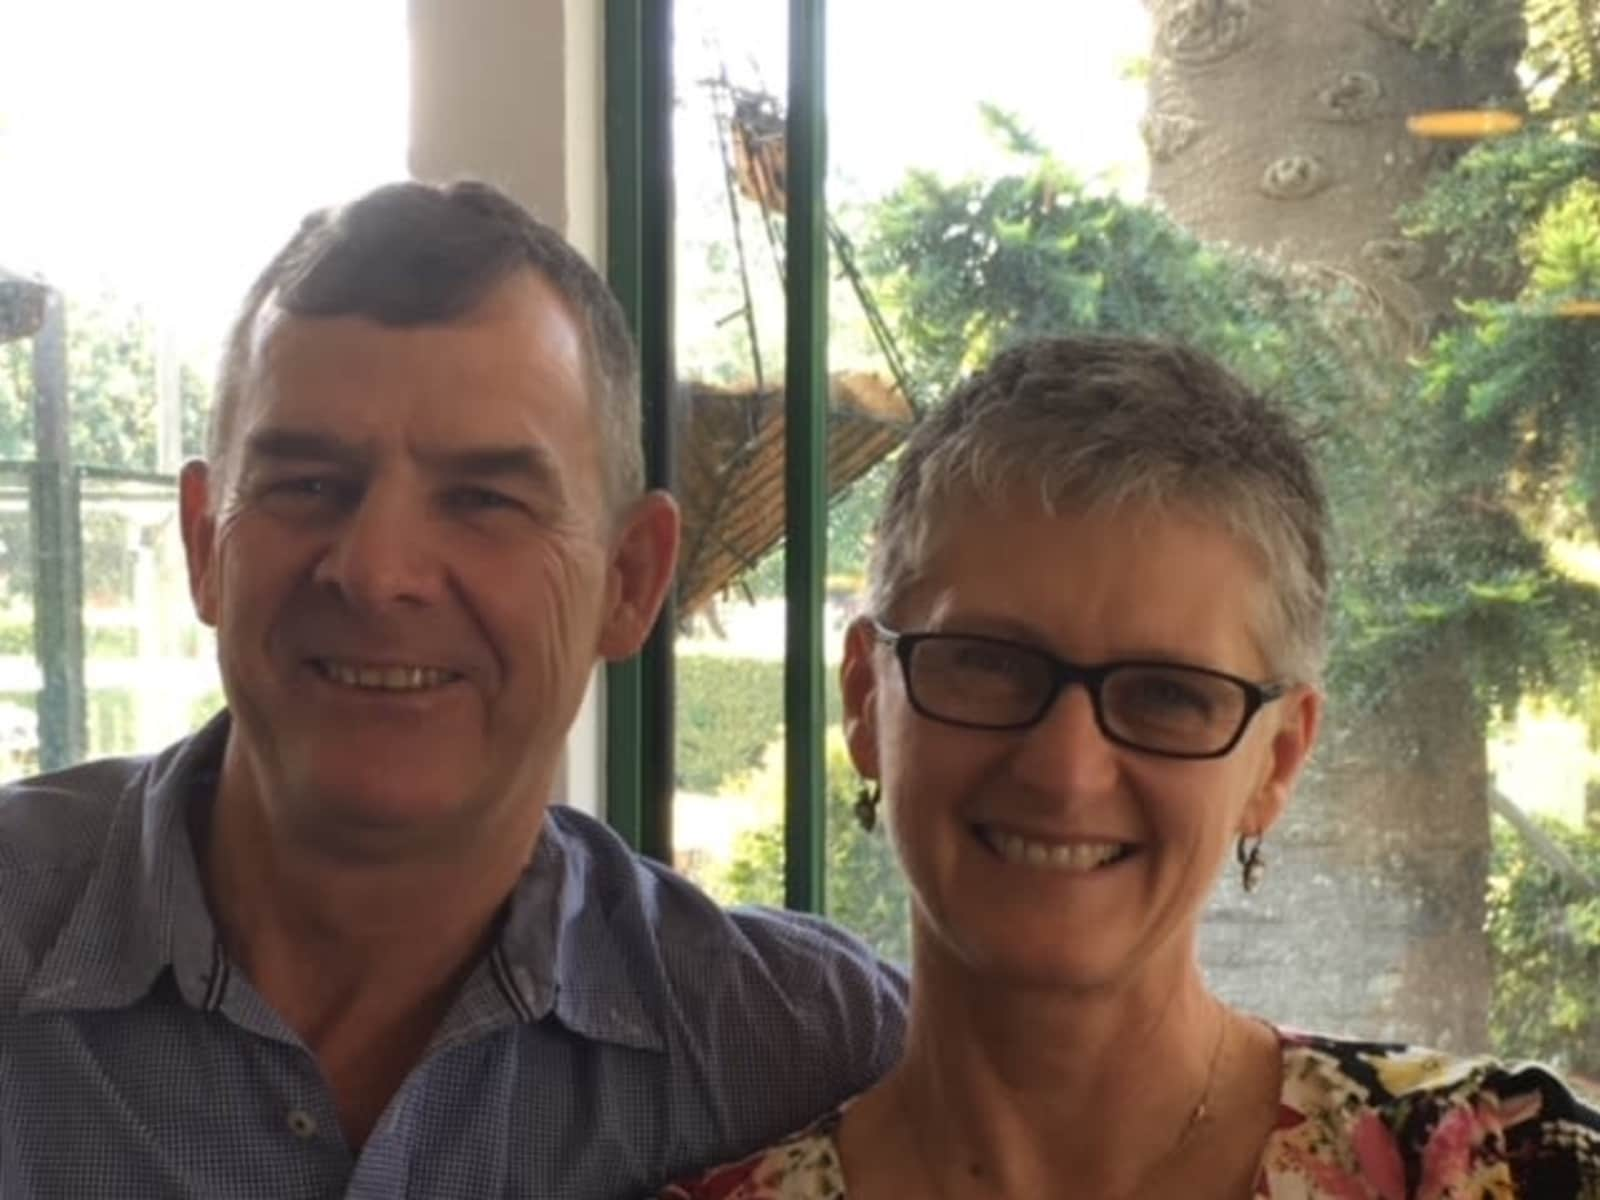 Bridget and michael & Michael from Toowoomba, Queensland, Australia